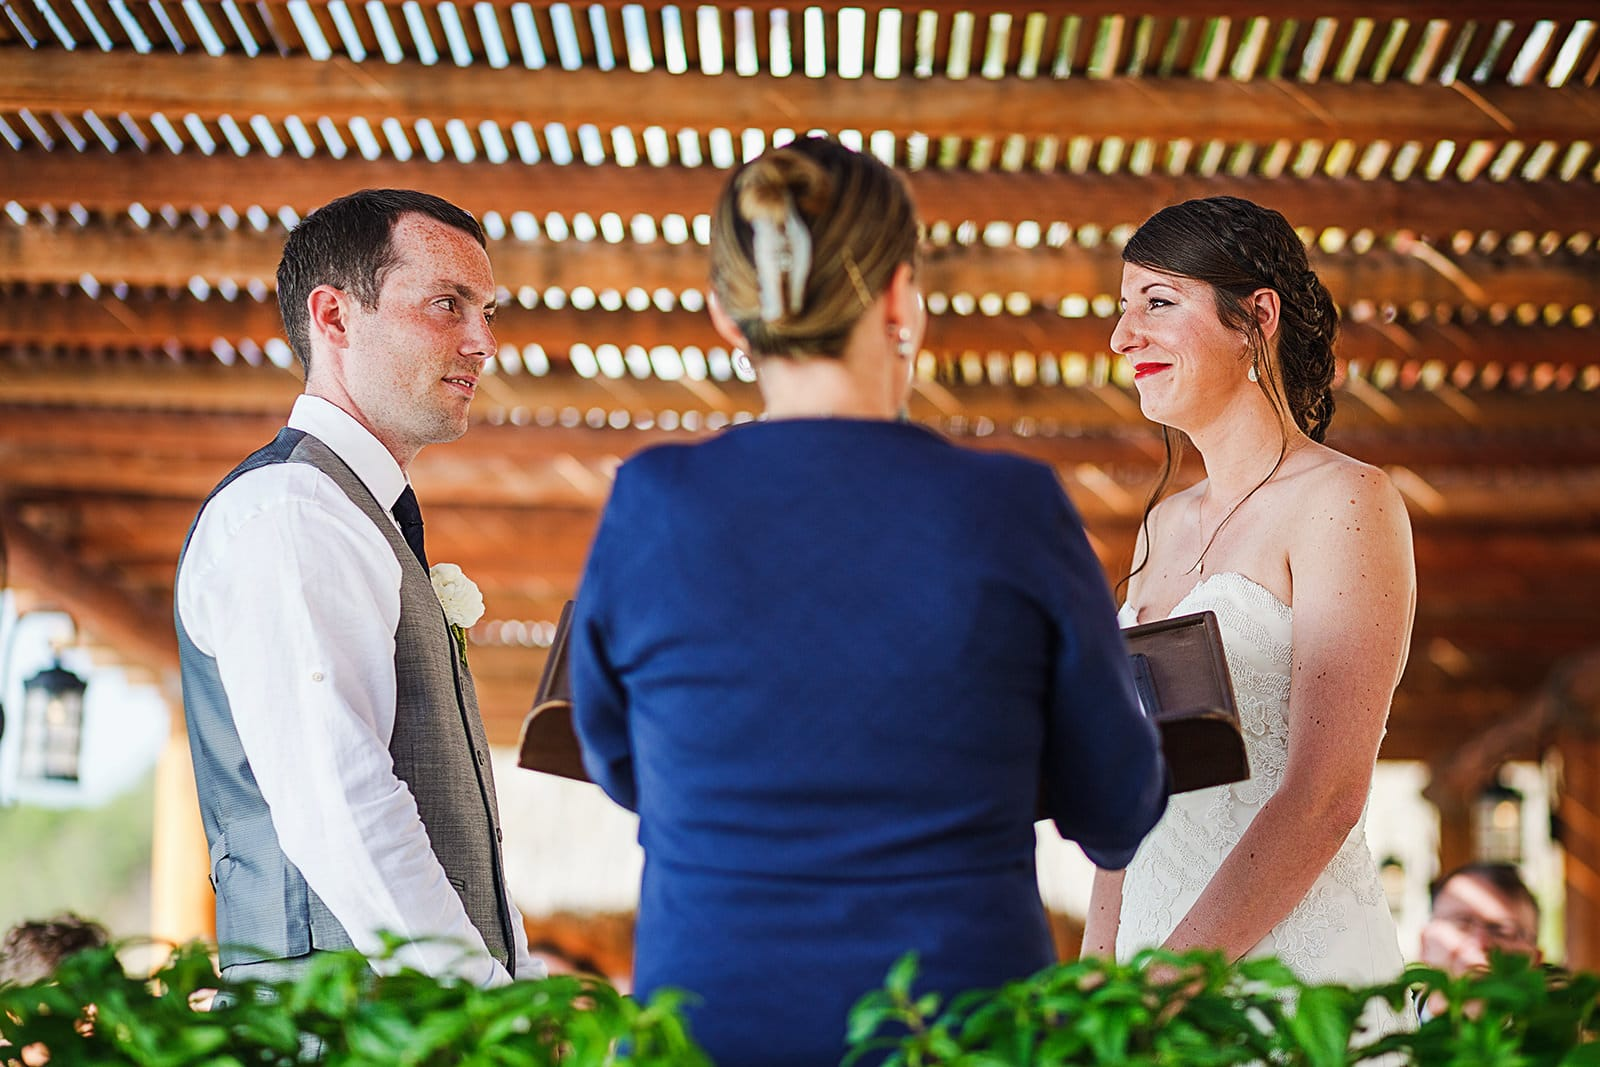 Bride and groom stare at each other during wedding ceremony at Playa Fiesta terrace